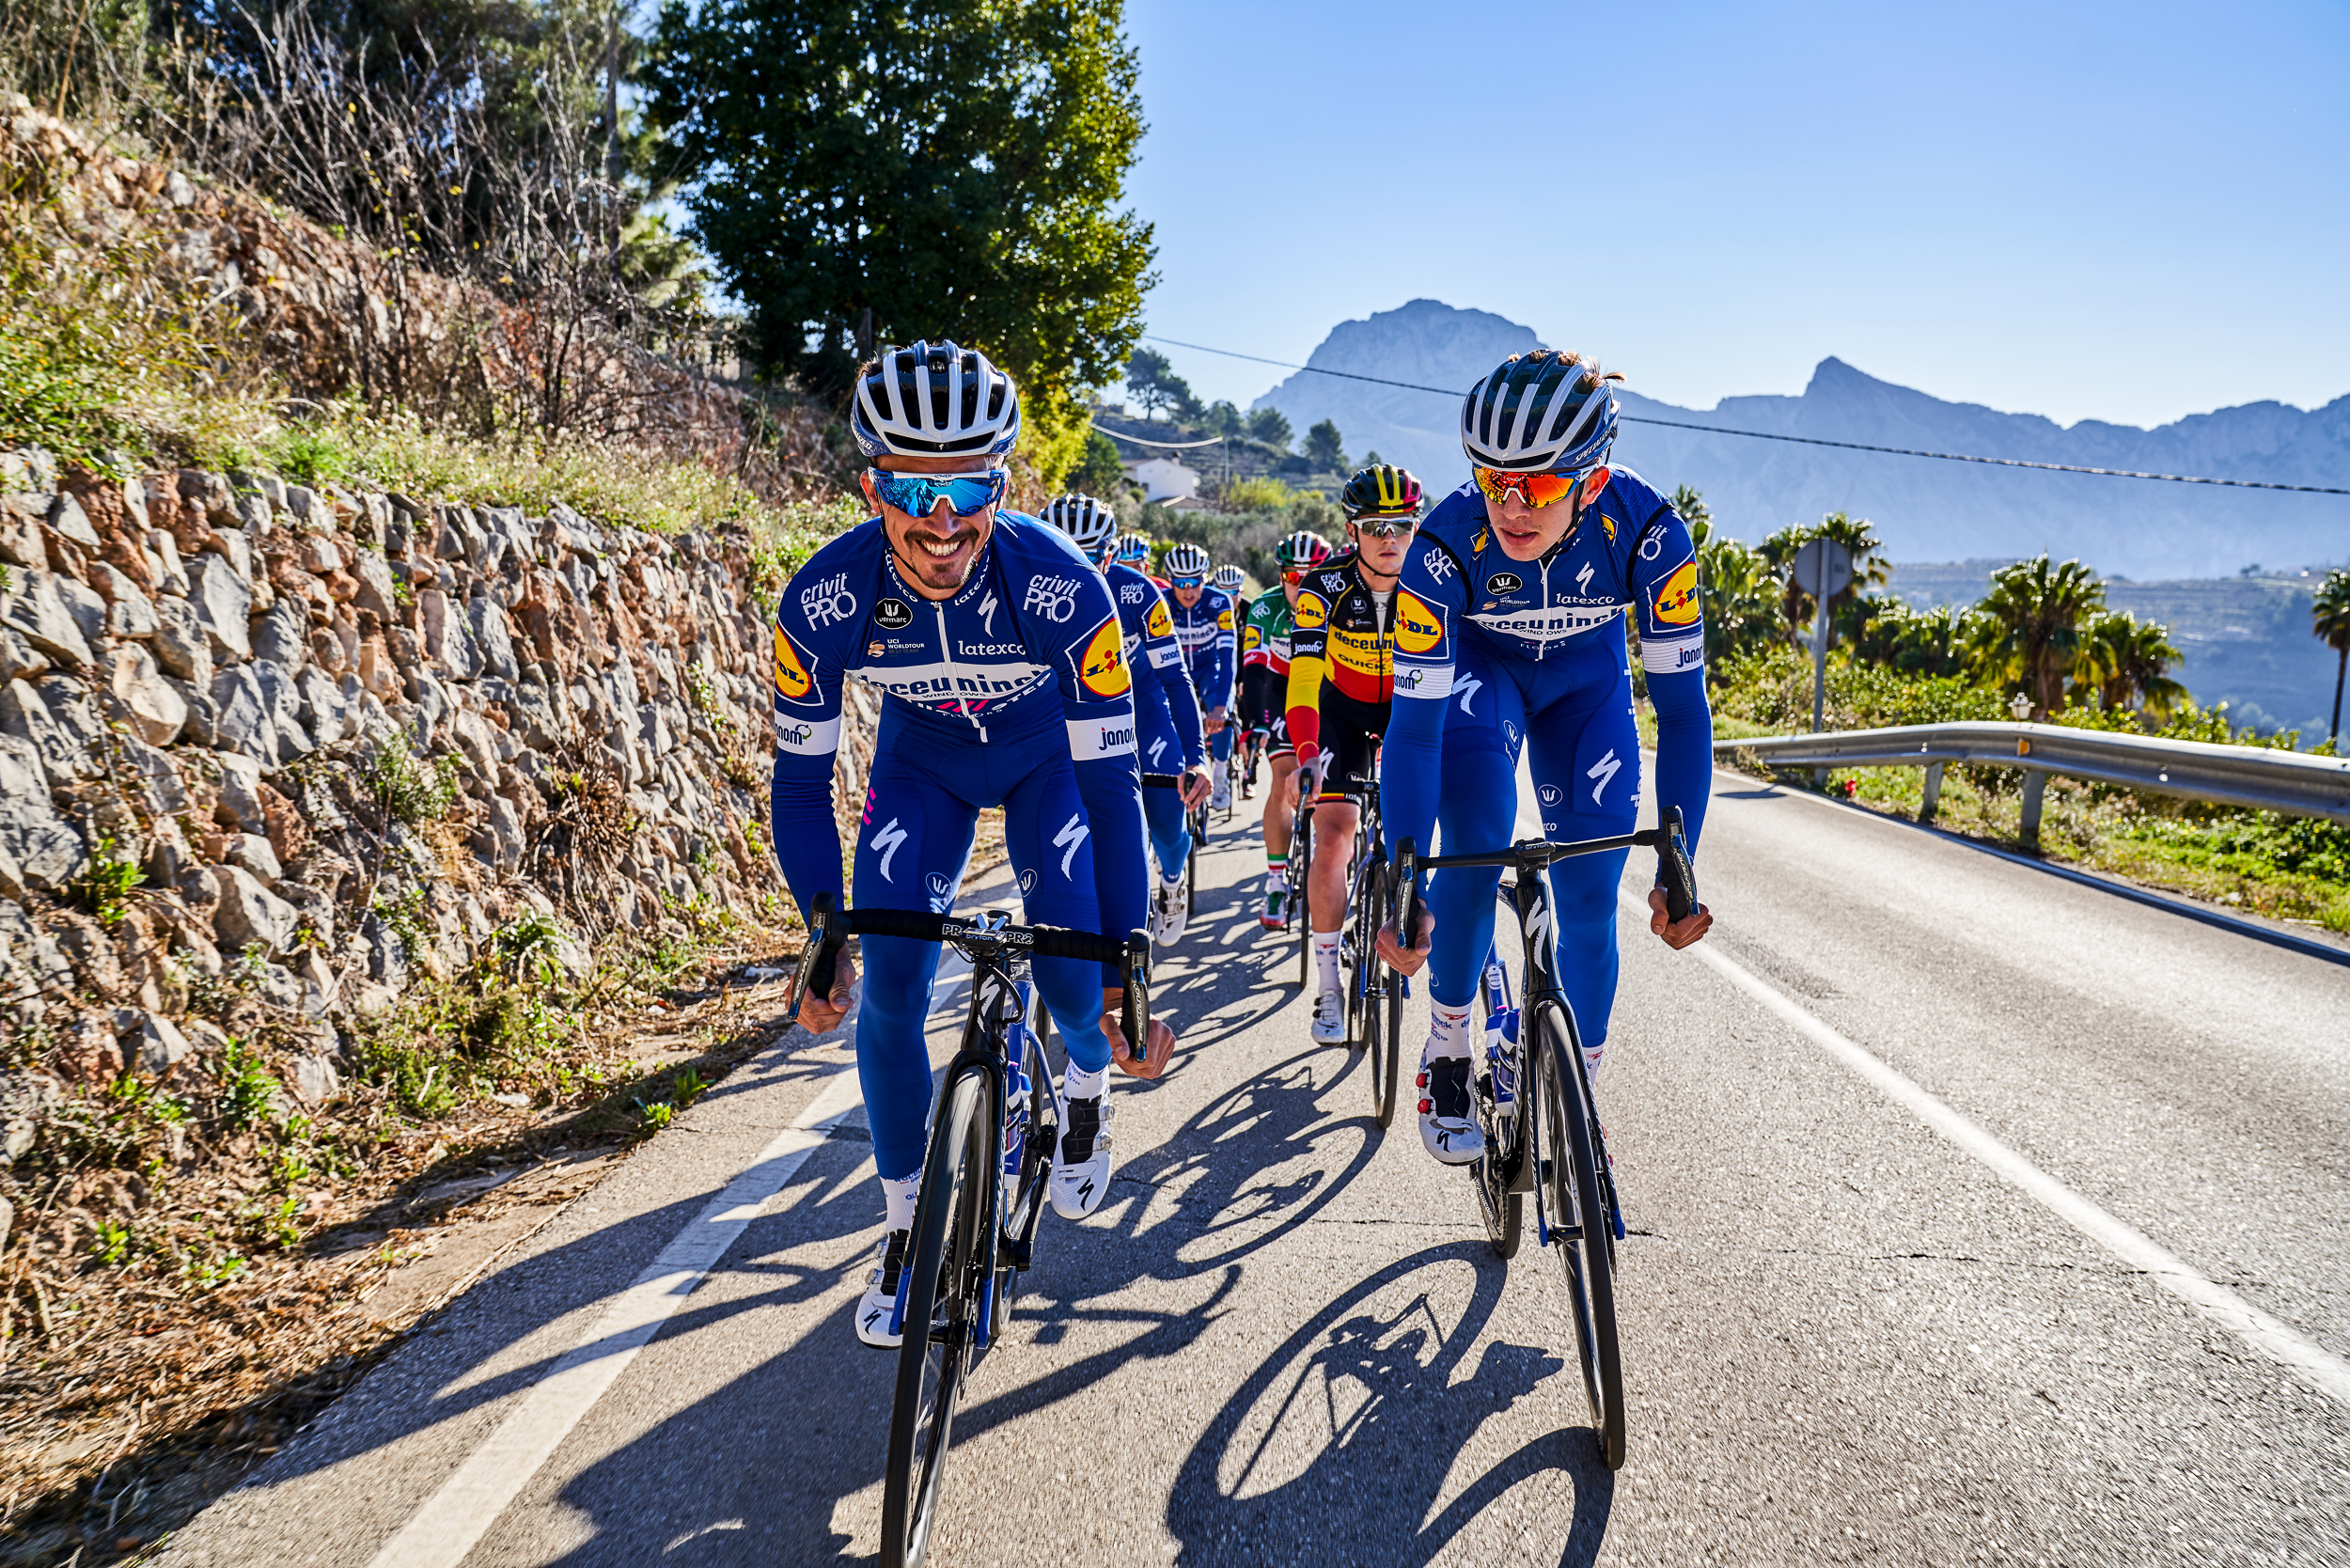 deceuninck_quickstep_group_action_dsc07325_1.jpg